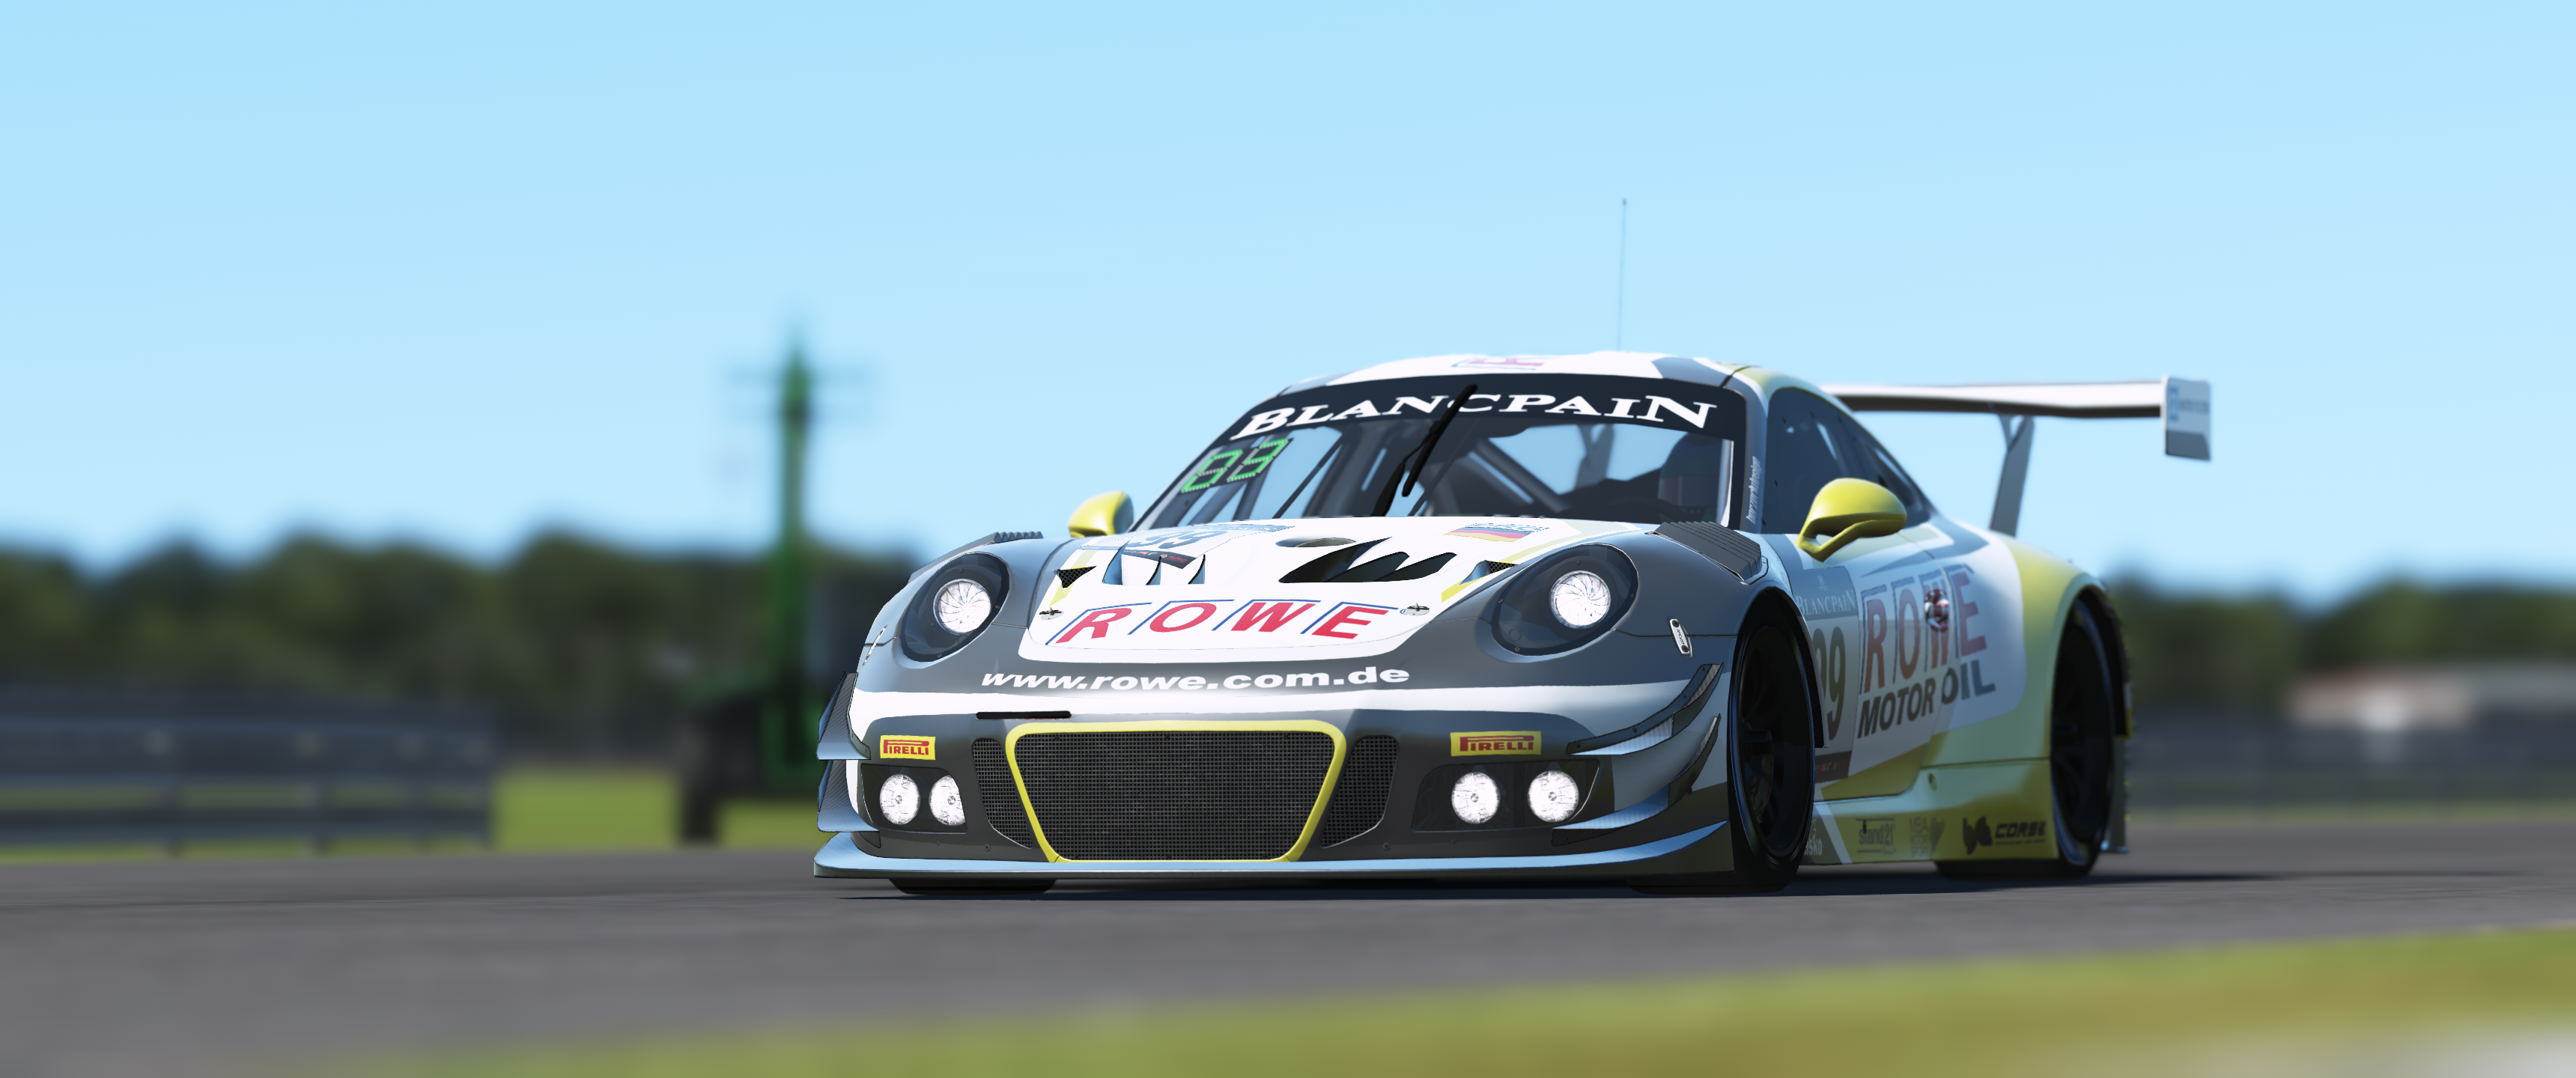 rFactor2 2019-02-27 17-14-55-64.png